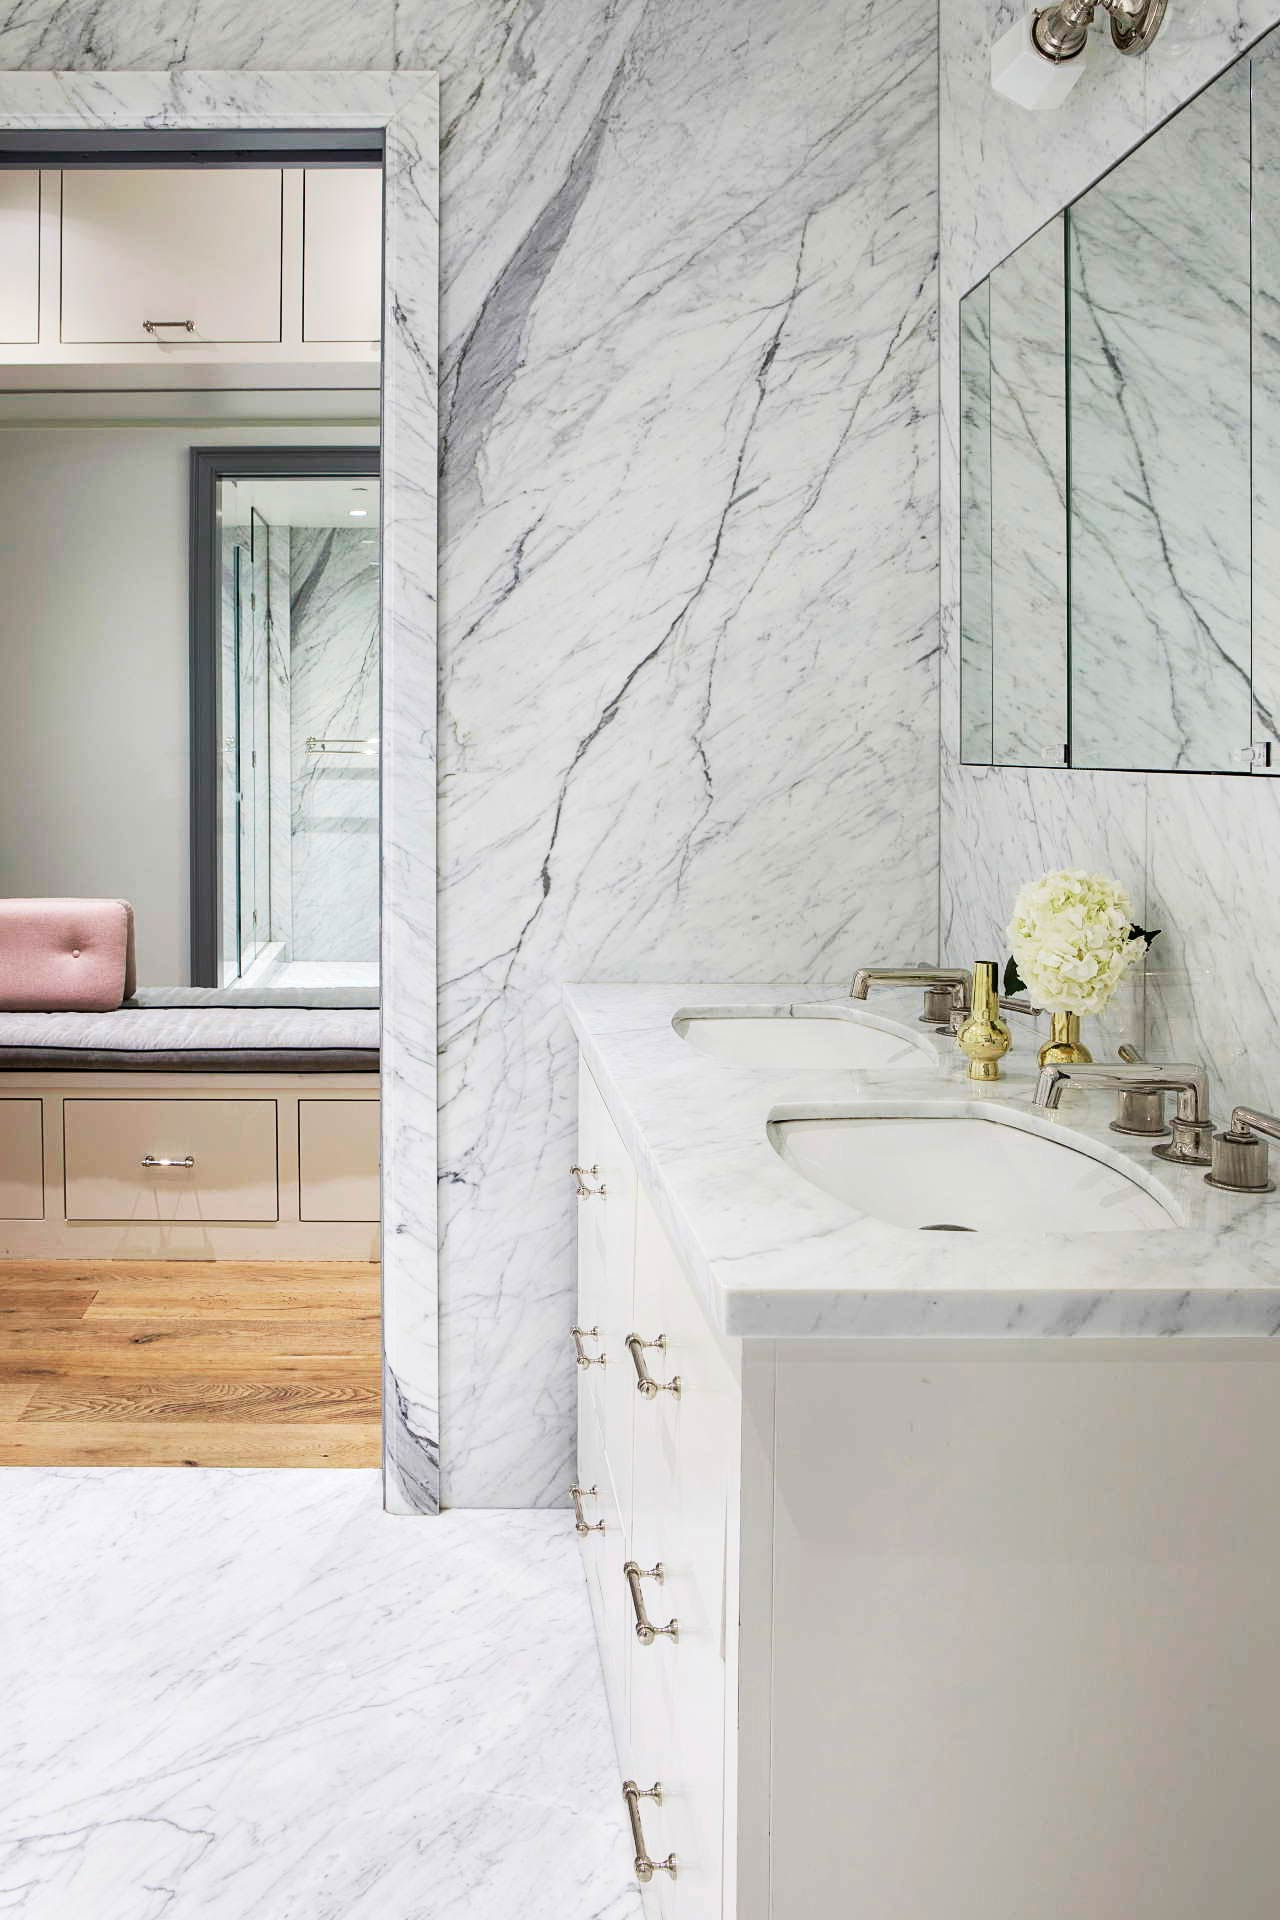 marble-countertop-in-luxury-bathroom